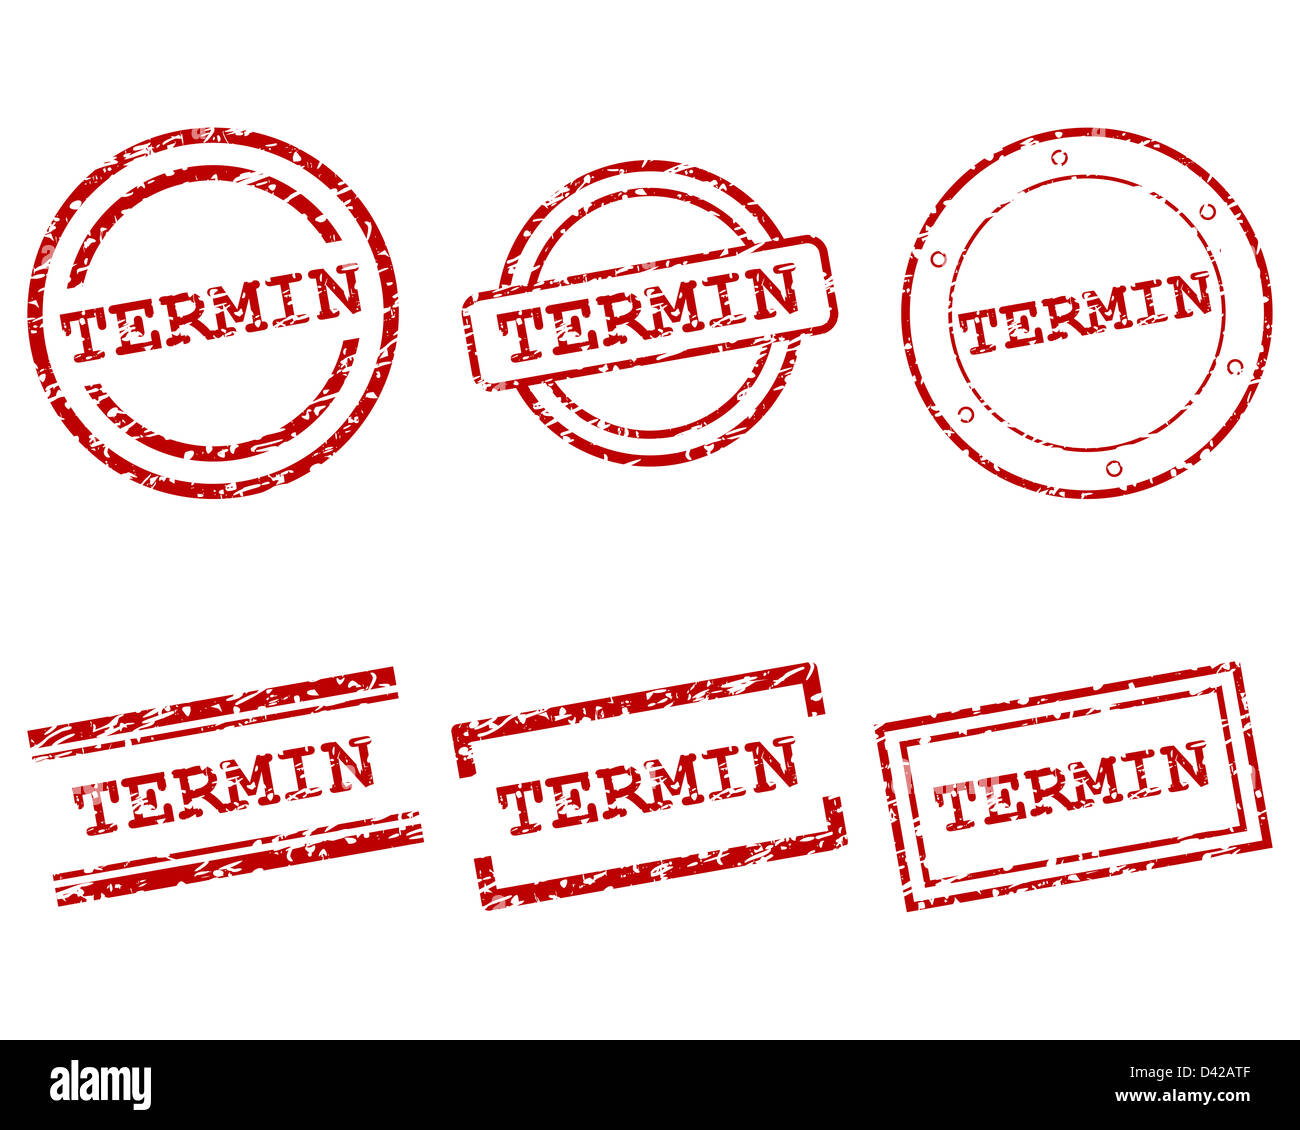 Termin stamps - Stock Image